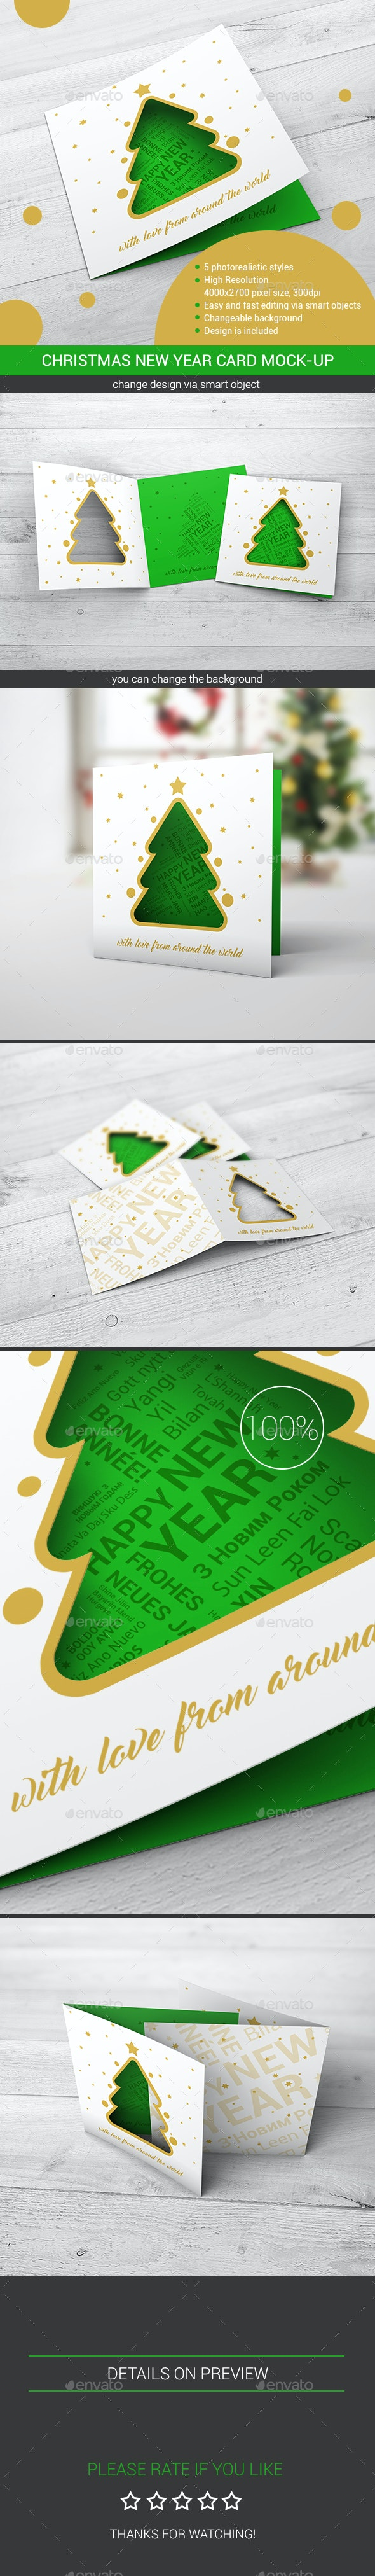 Christmas New Year Card Mock-Up - Miscellaneous Print